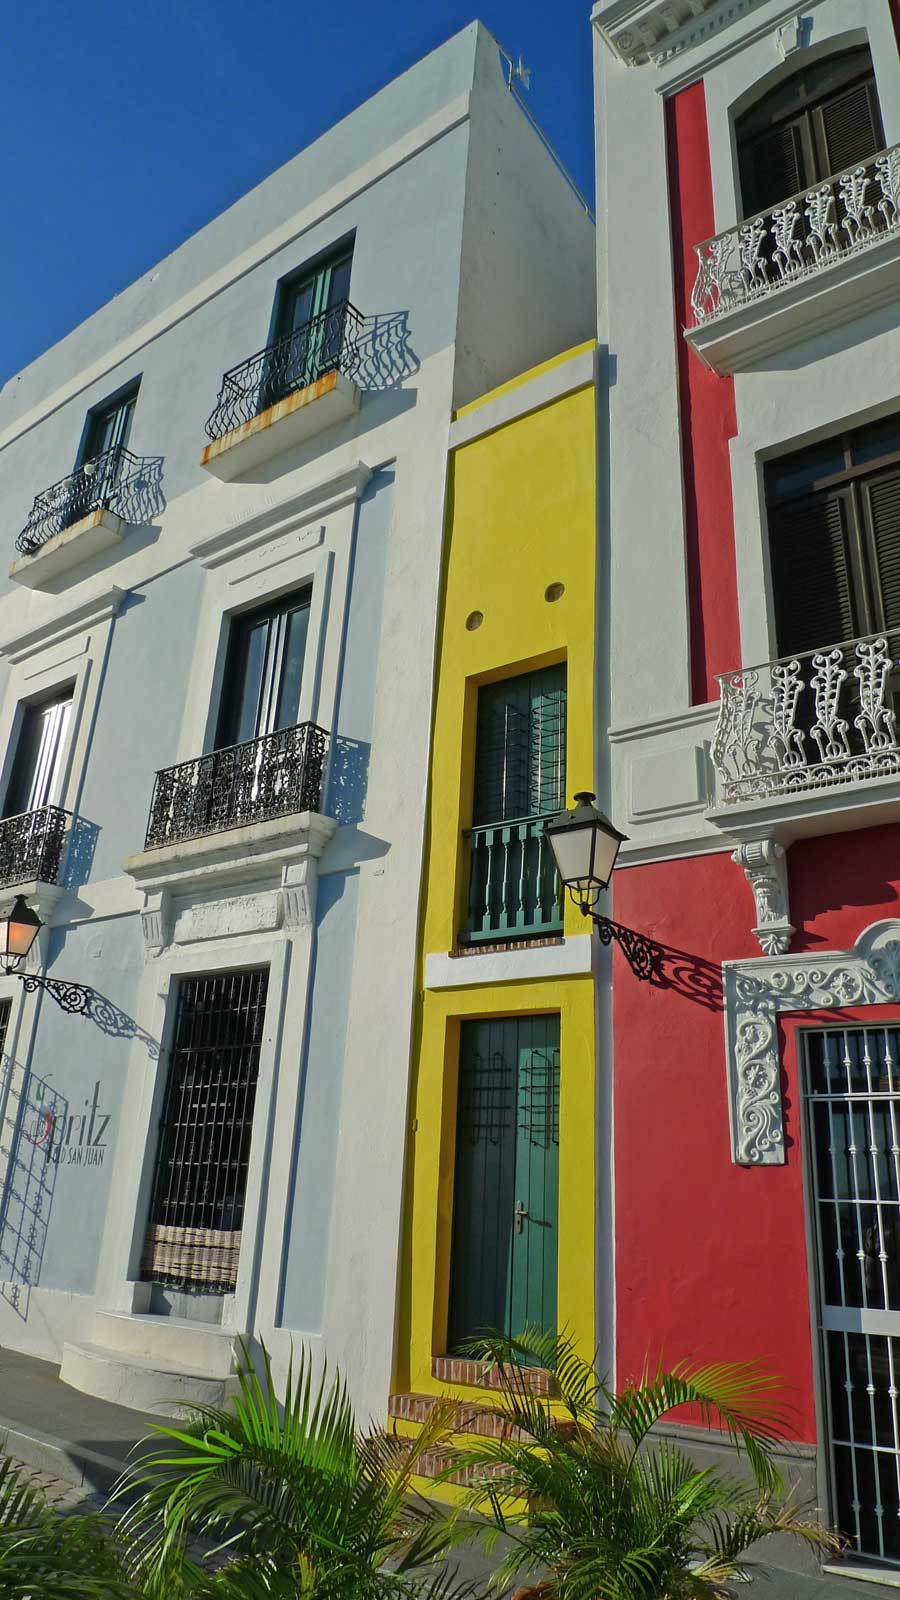 7. World's Smallest House - Things to do in San Juan Puerto Rico 1